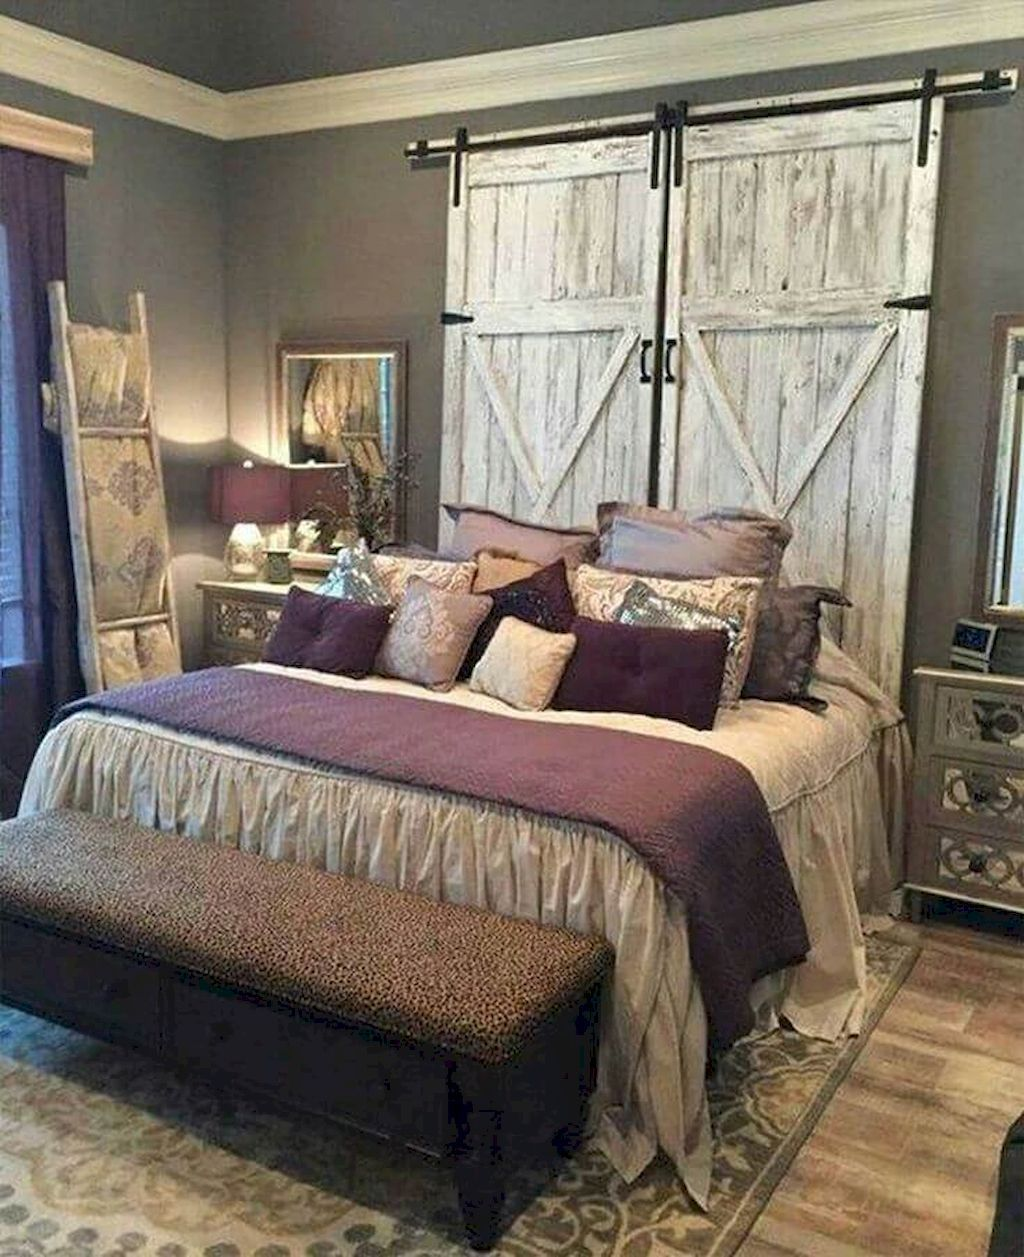 Pin By Jalissa Wadel On Master Bedroom In 2019 | Farmhouse Master